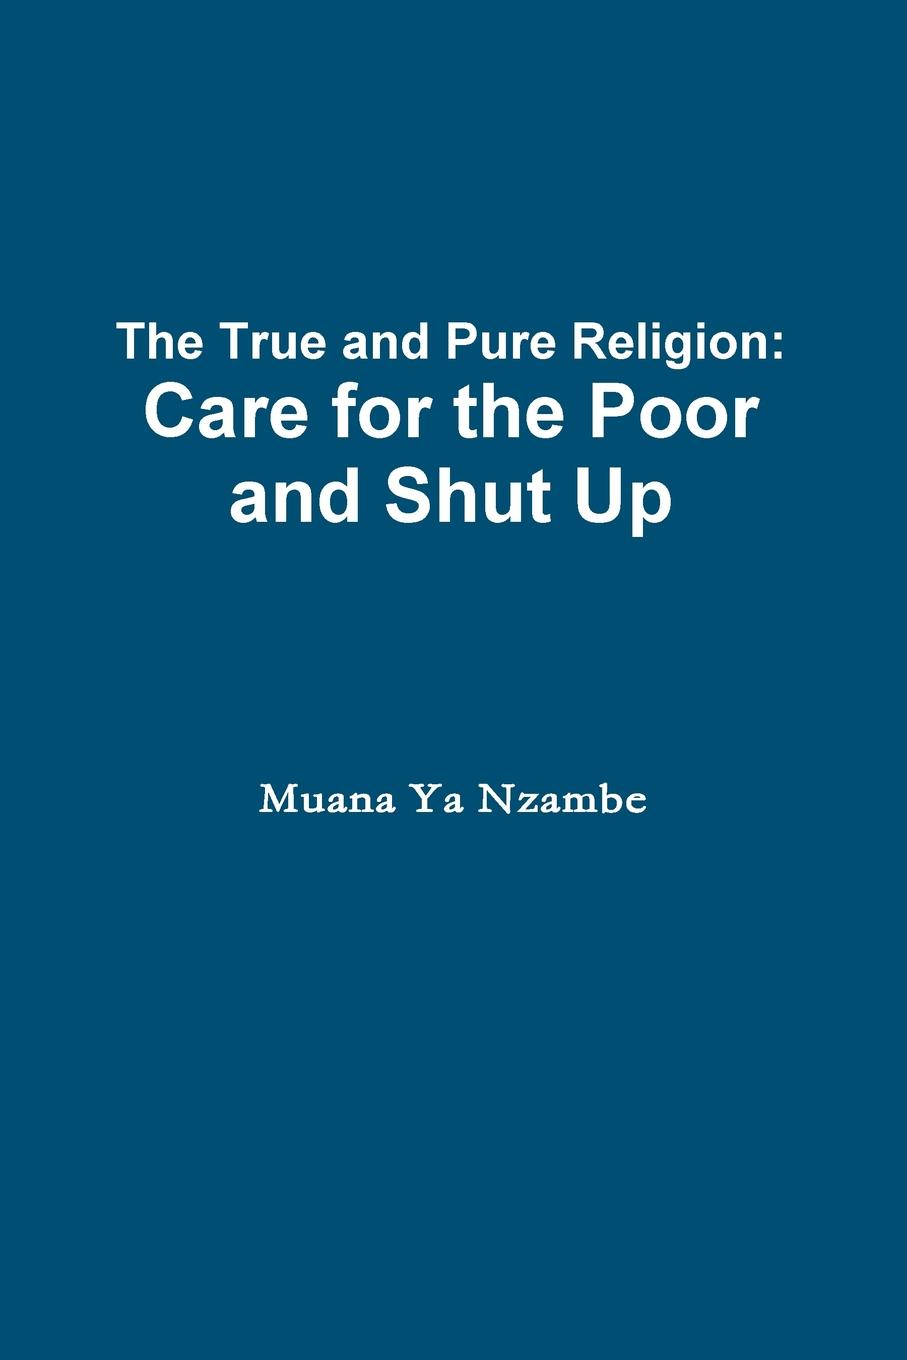 Фото - Muana Ya Nzambe The True and Pure Religion. Care for the Poor and Shut Up rurality and rural poverty what it means to be poor